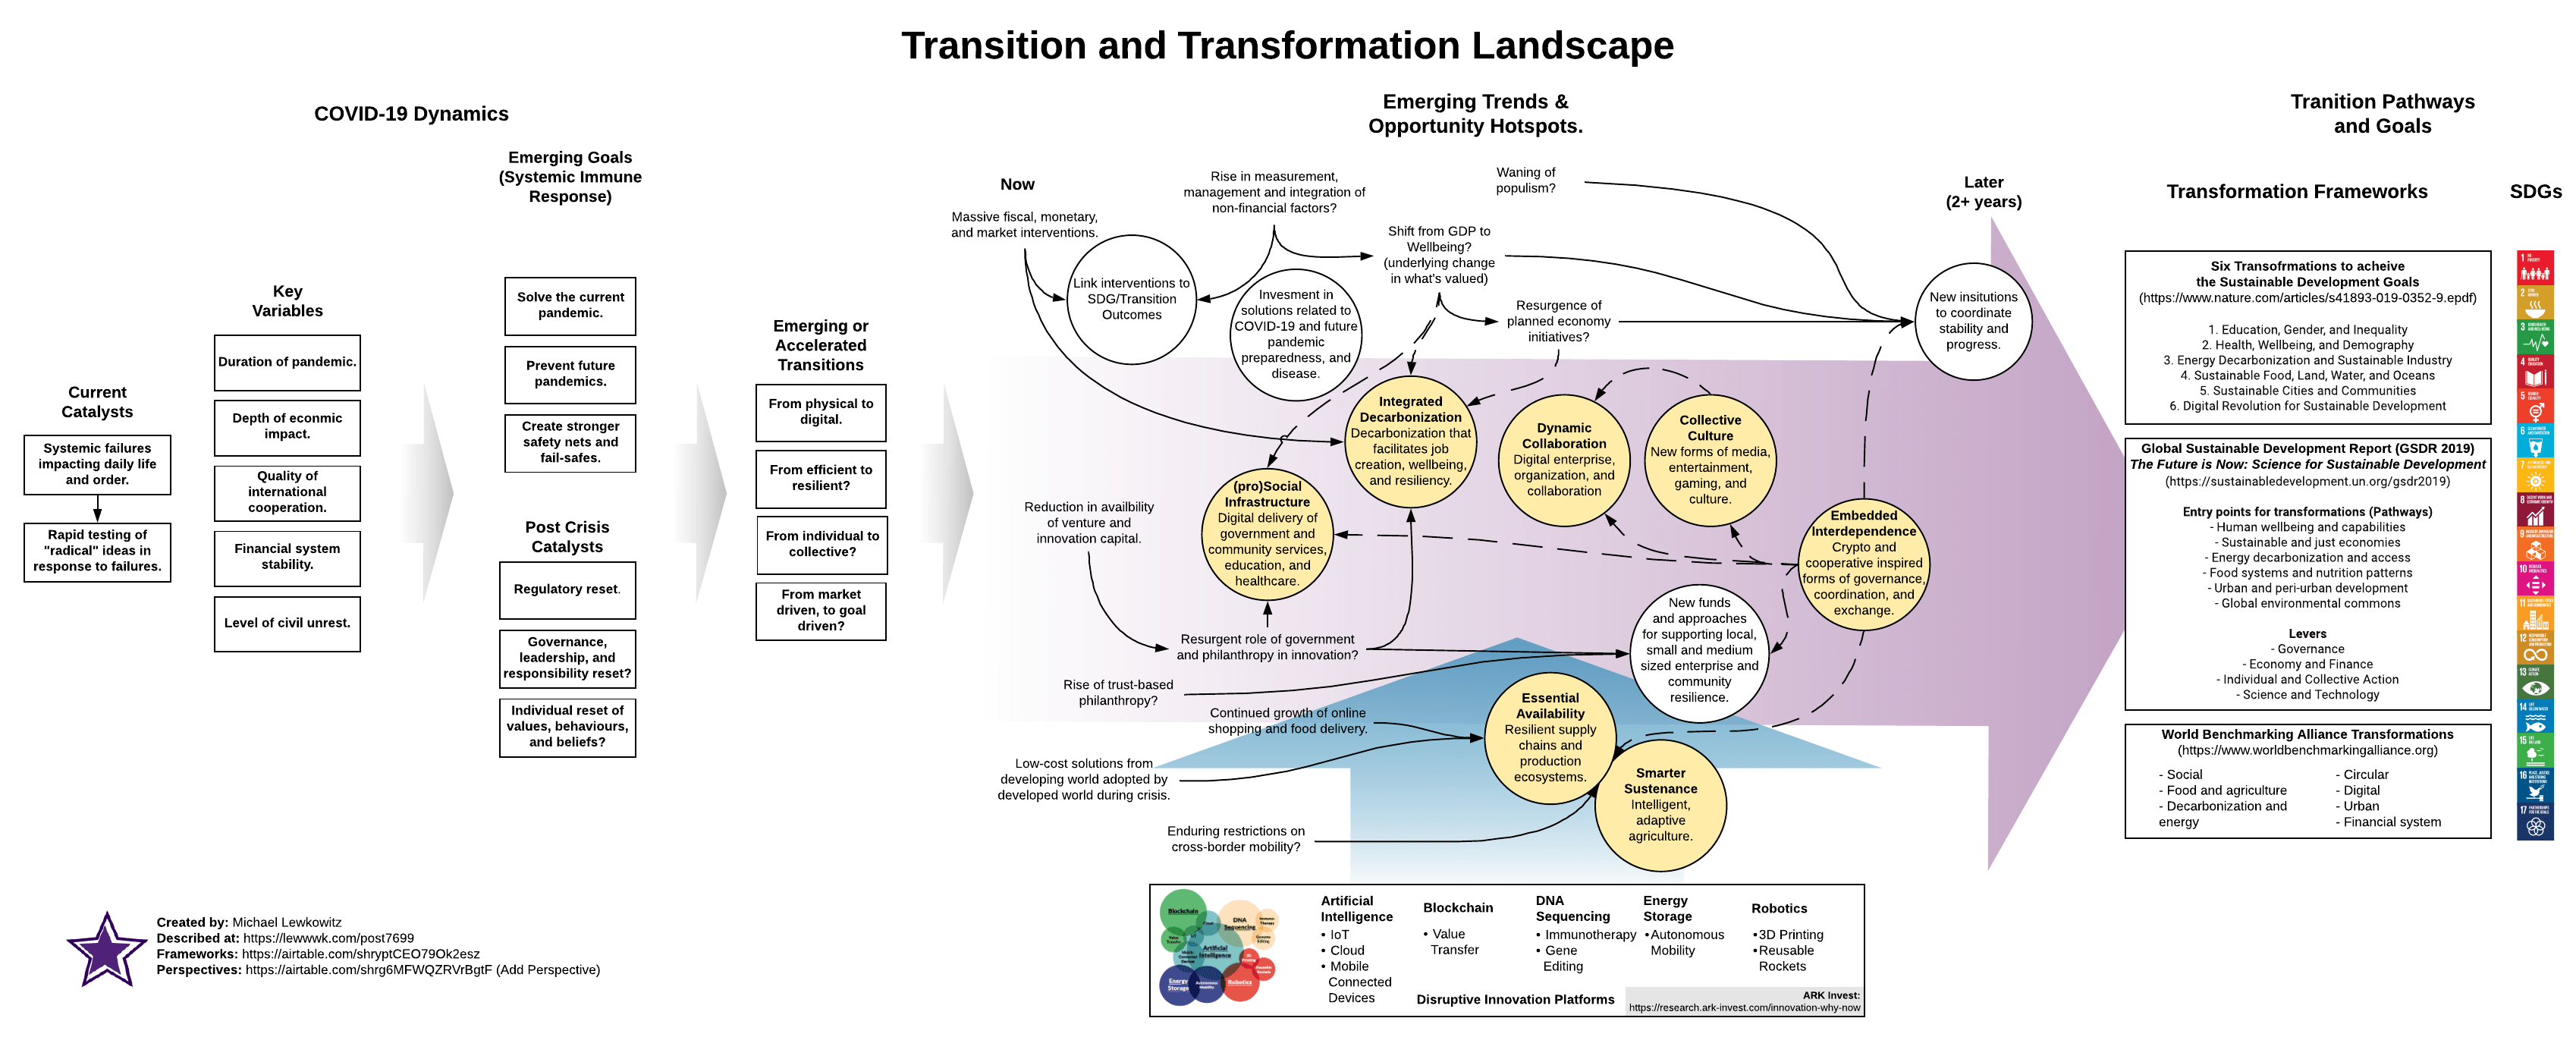 Possibilian: Transition and Transformation Landscape